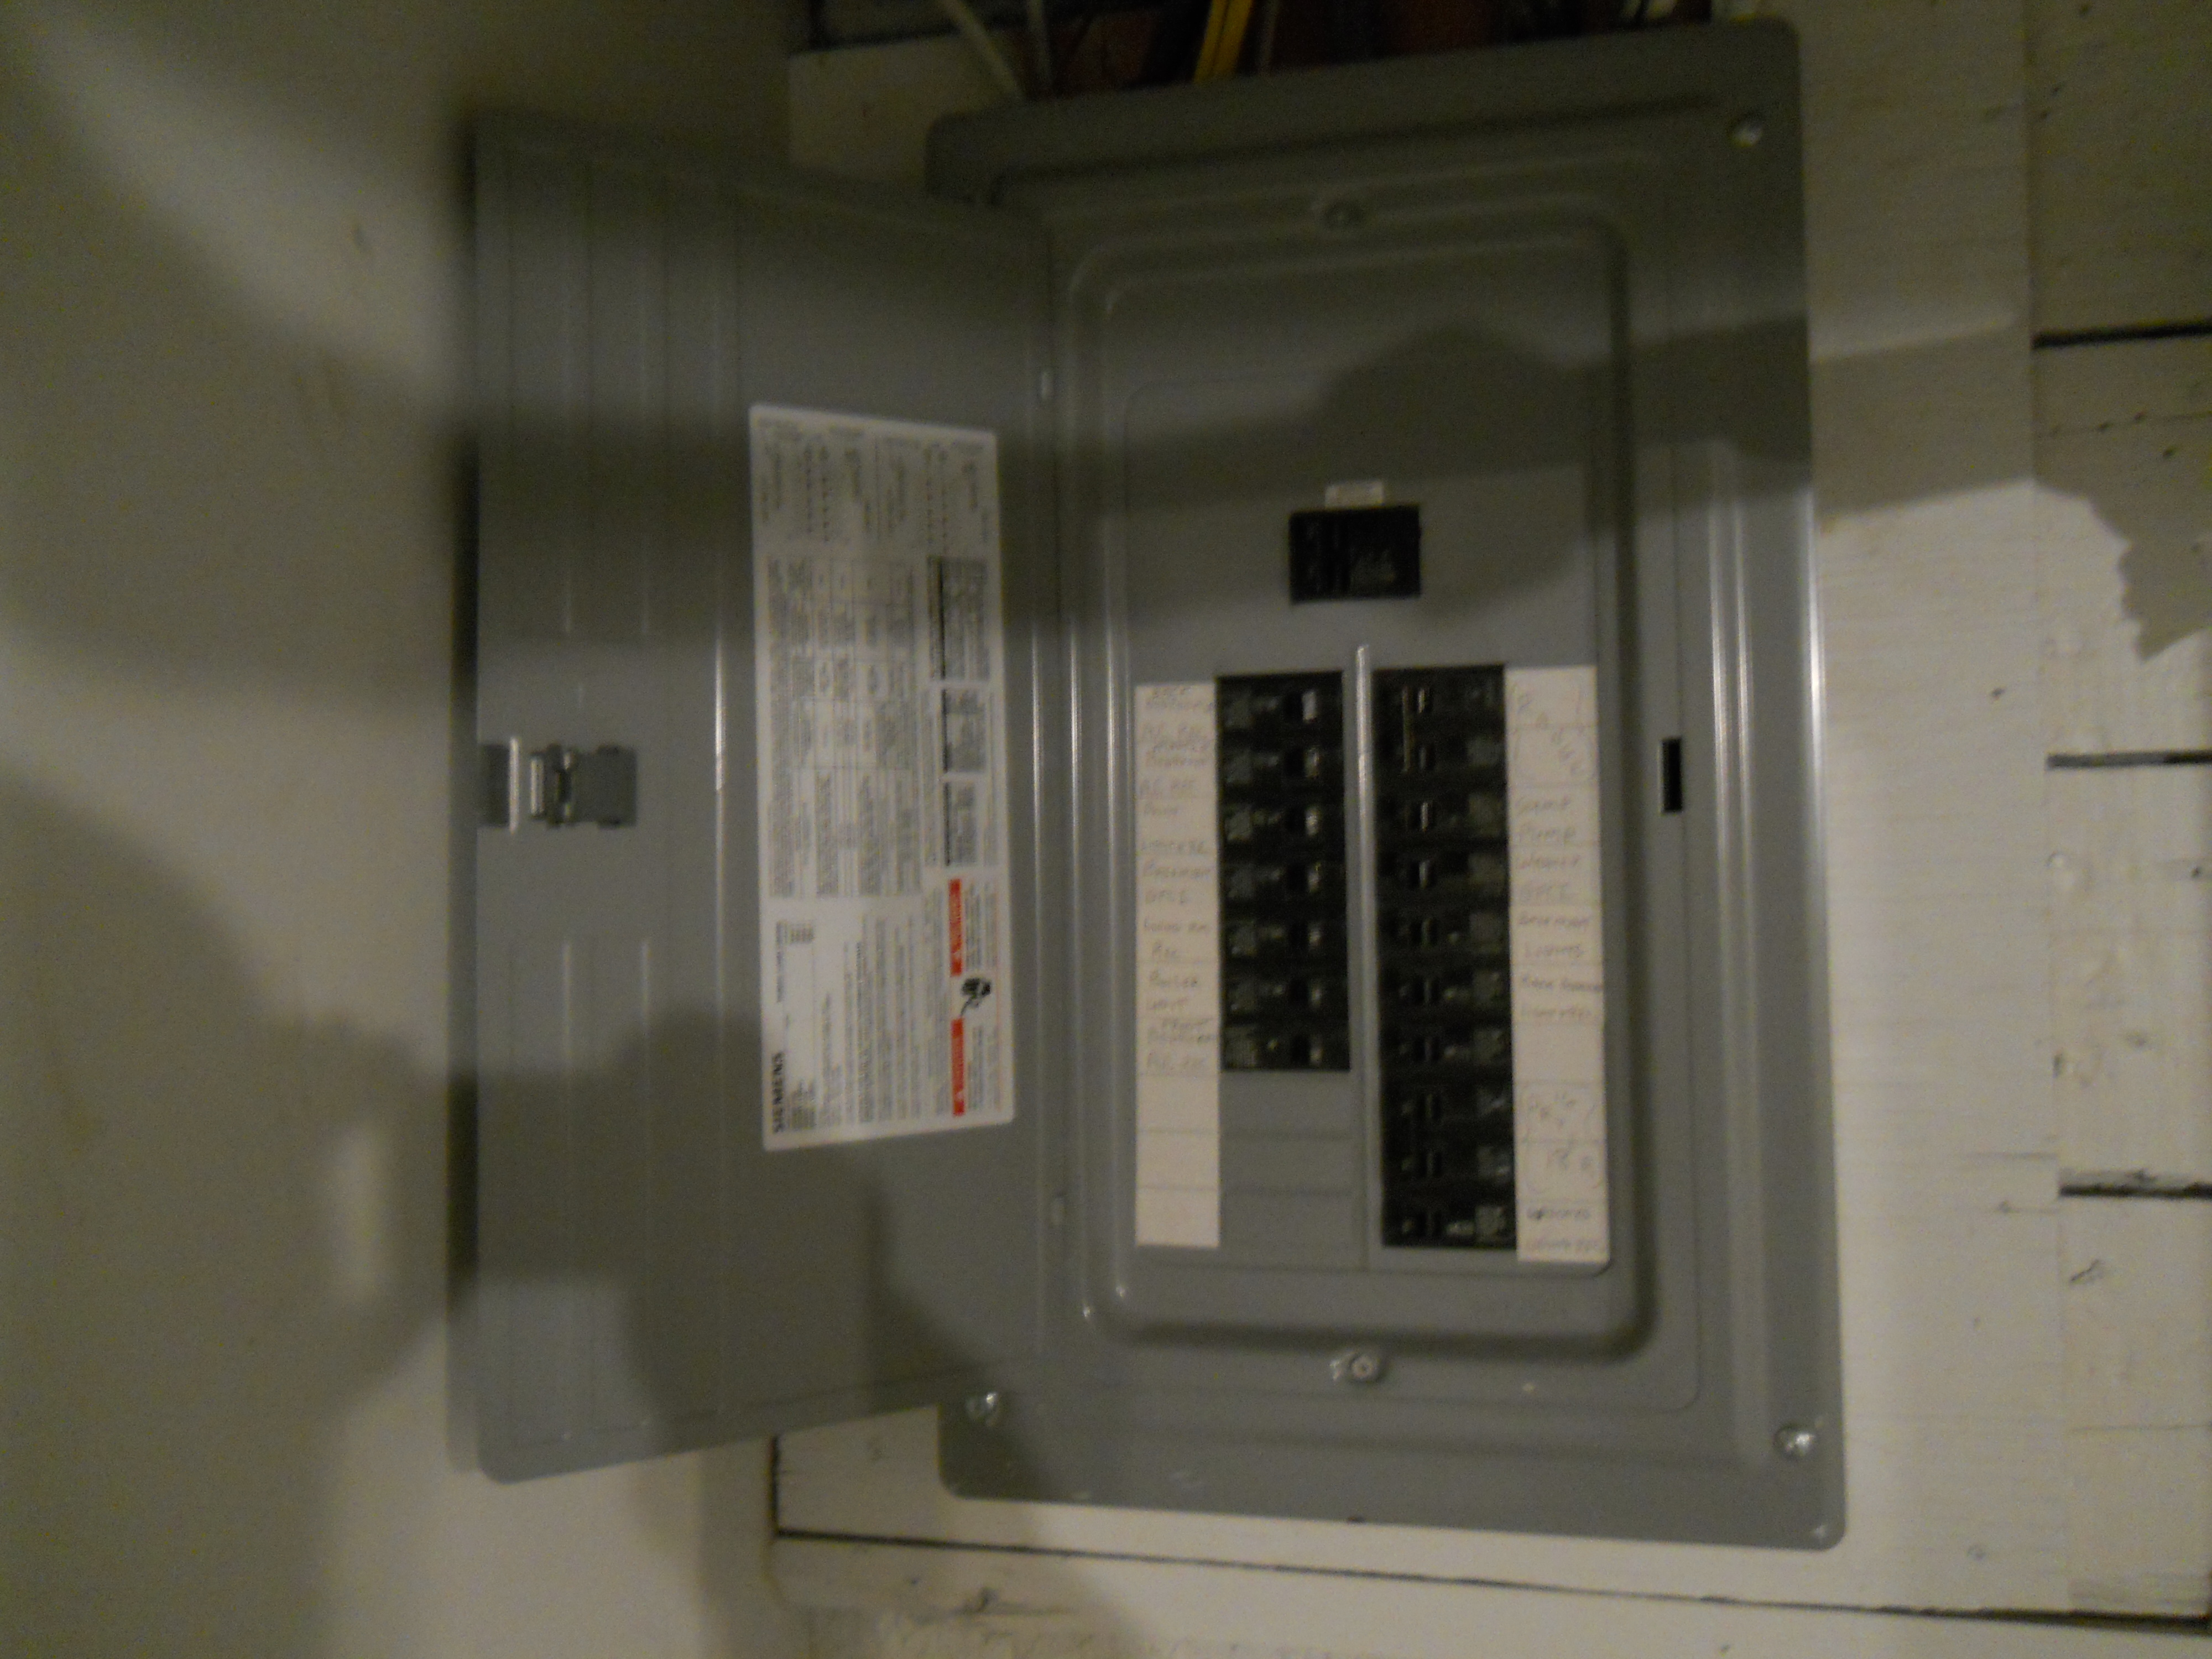 483 Mineola Ave Square Management Electrical Circuit Breaker Panel Box Updated Electric